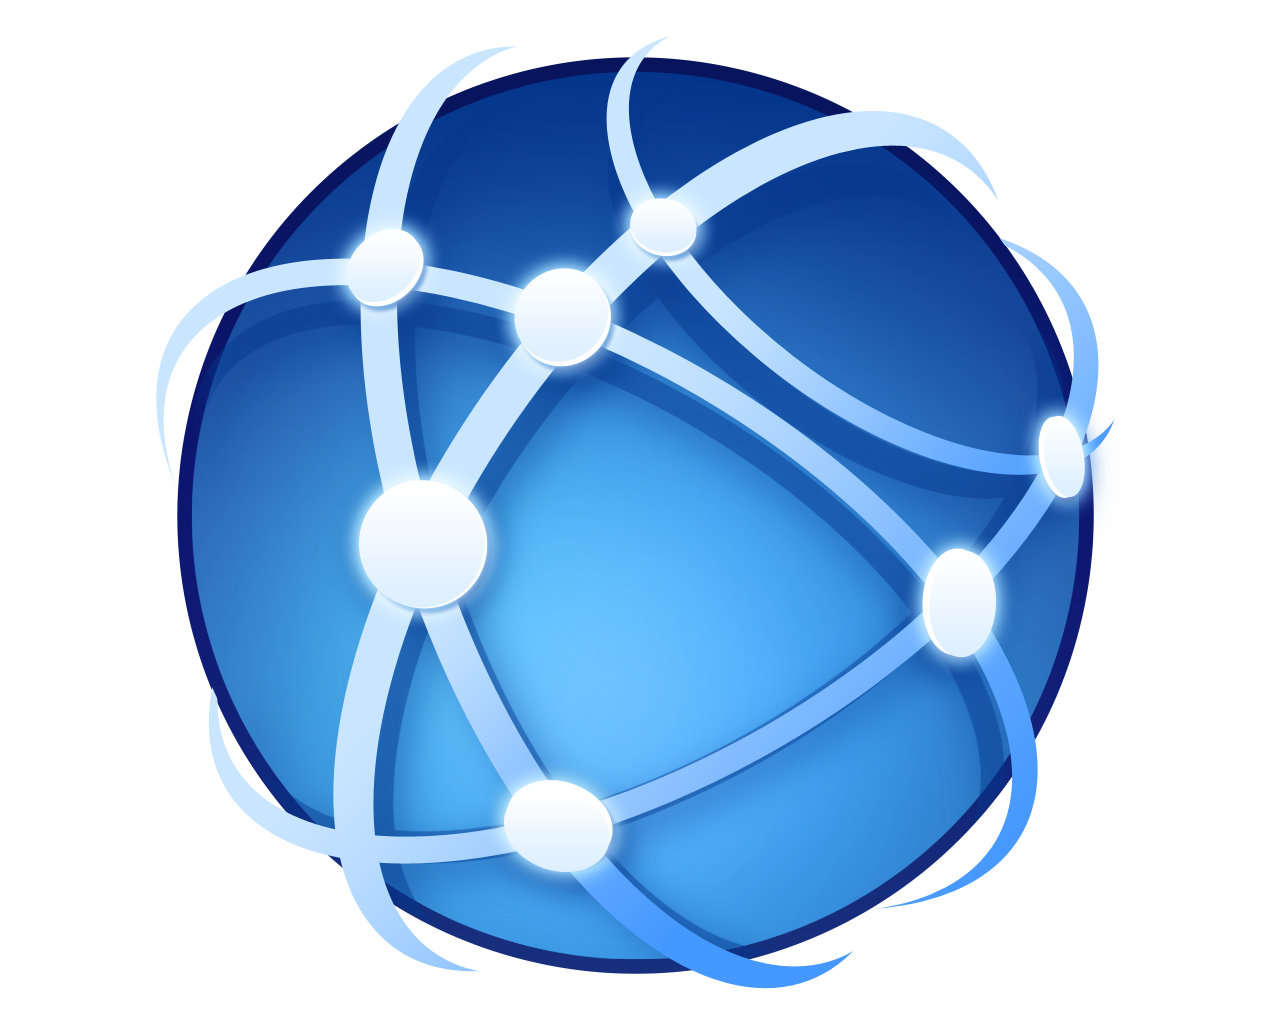 World Wide Web PNG - 173217